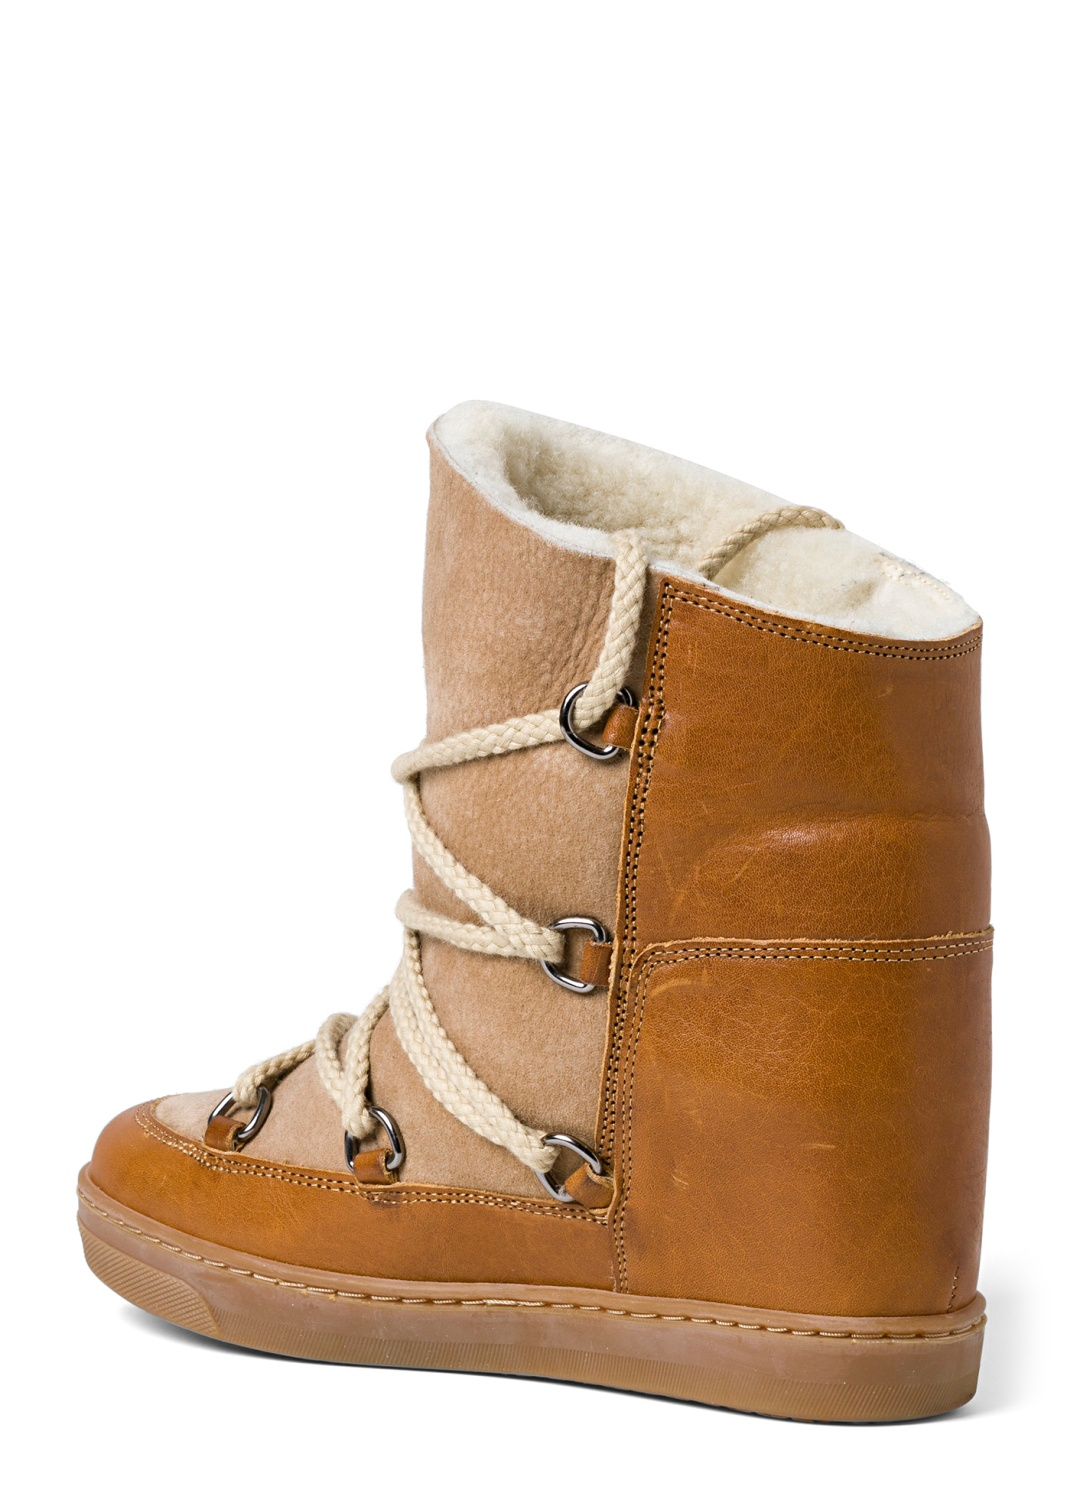 Nowles Snow Boot image number 2